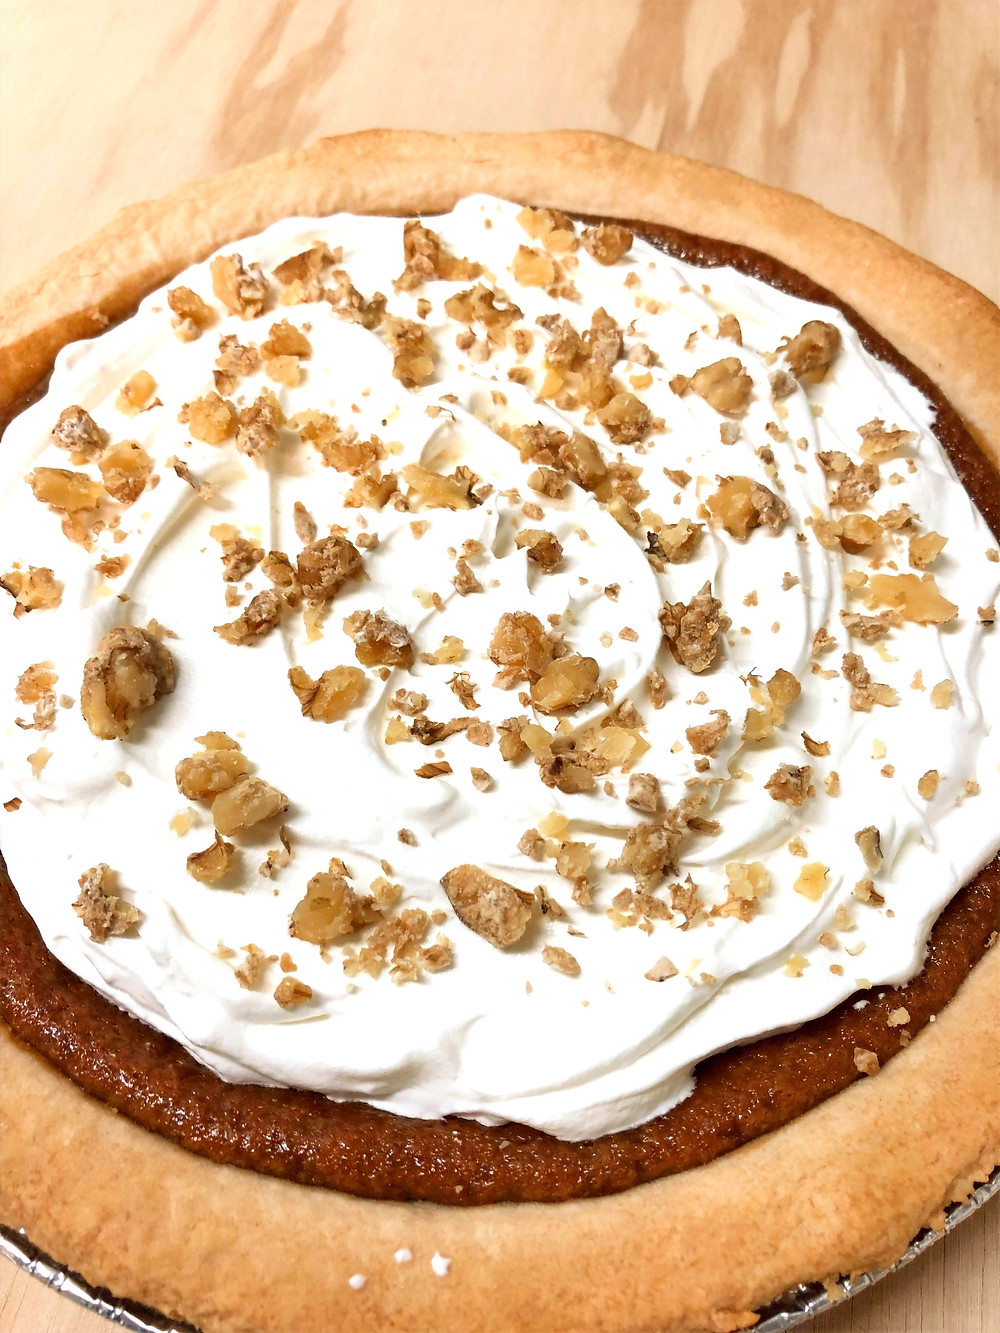 A pie with whipped cream and nut topping sits on a wood table.